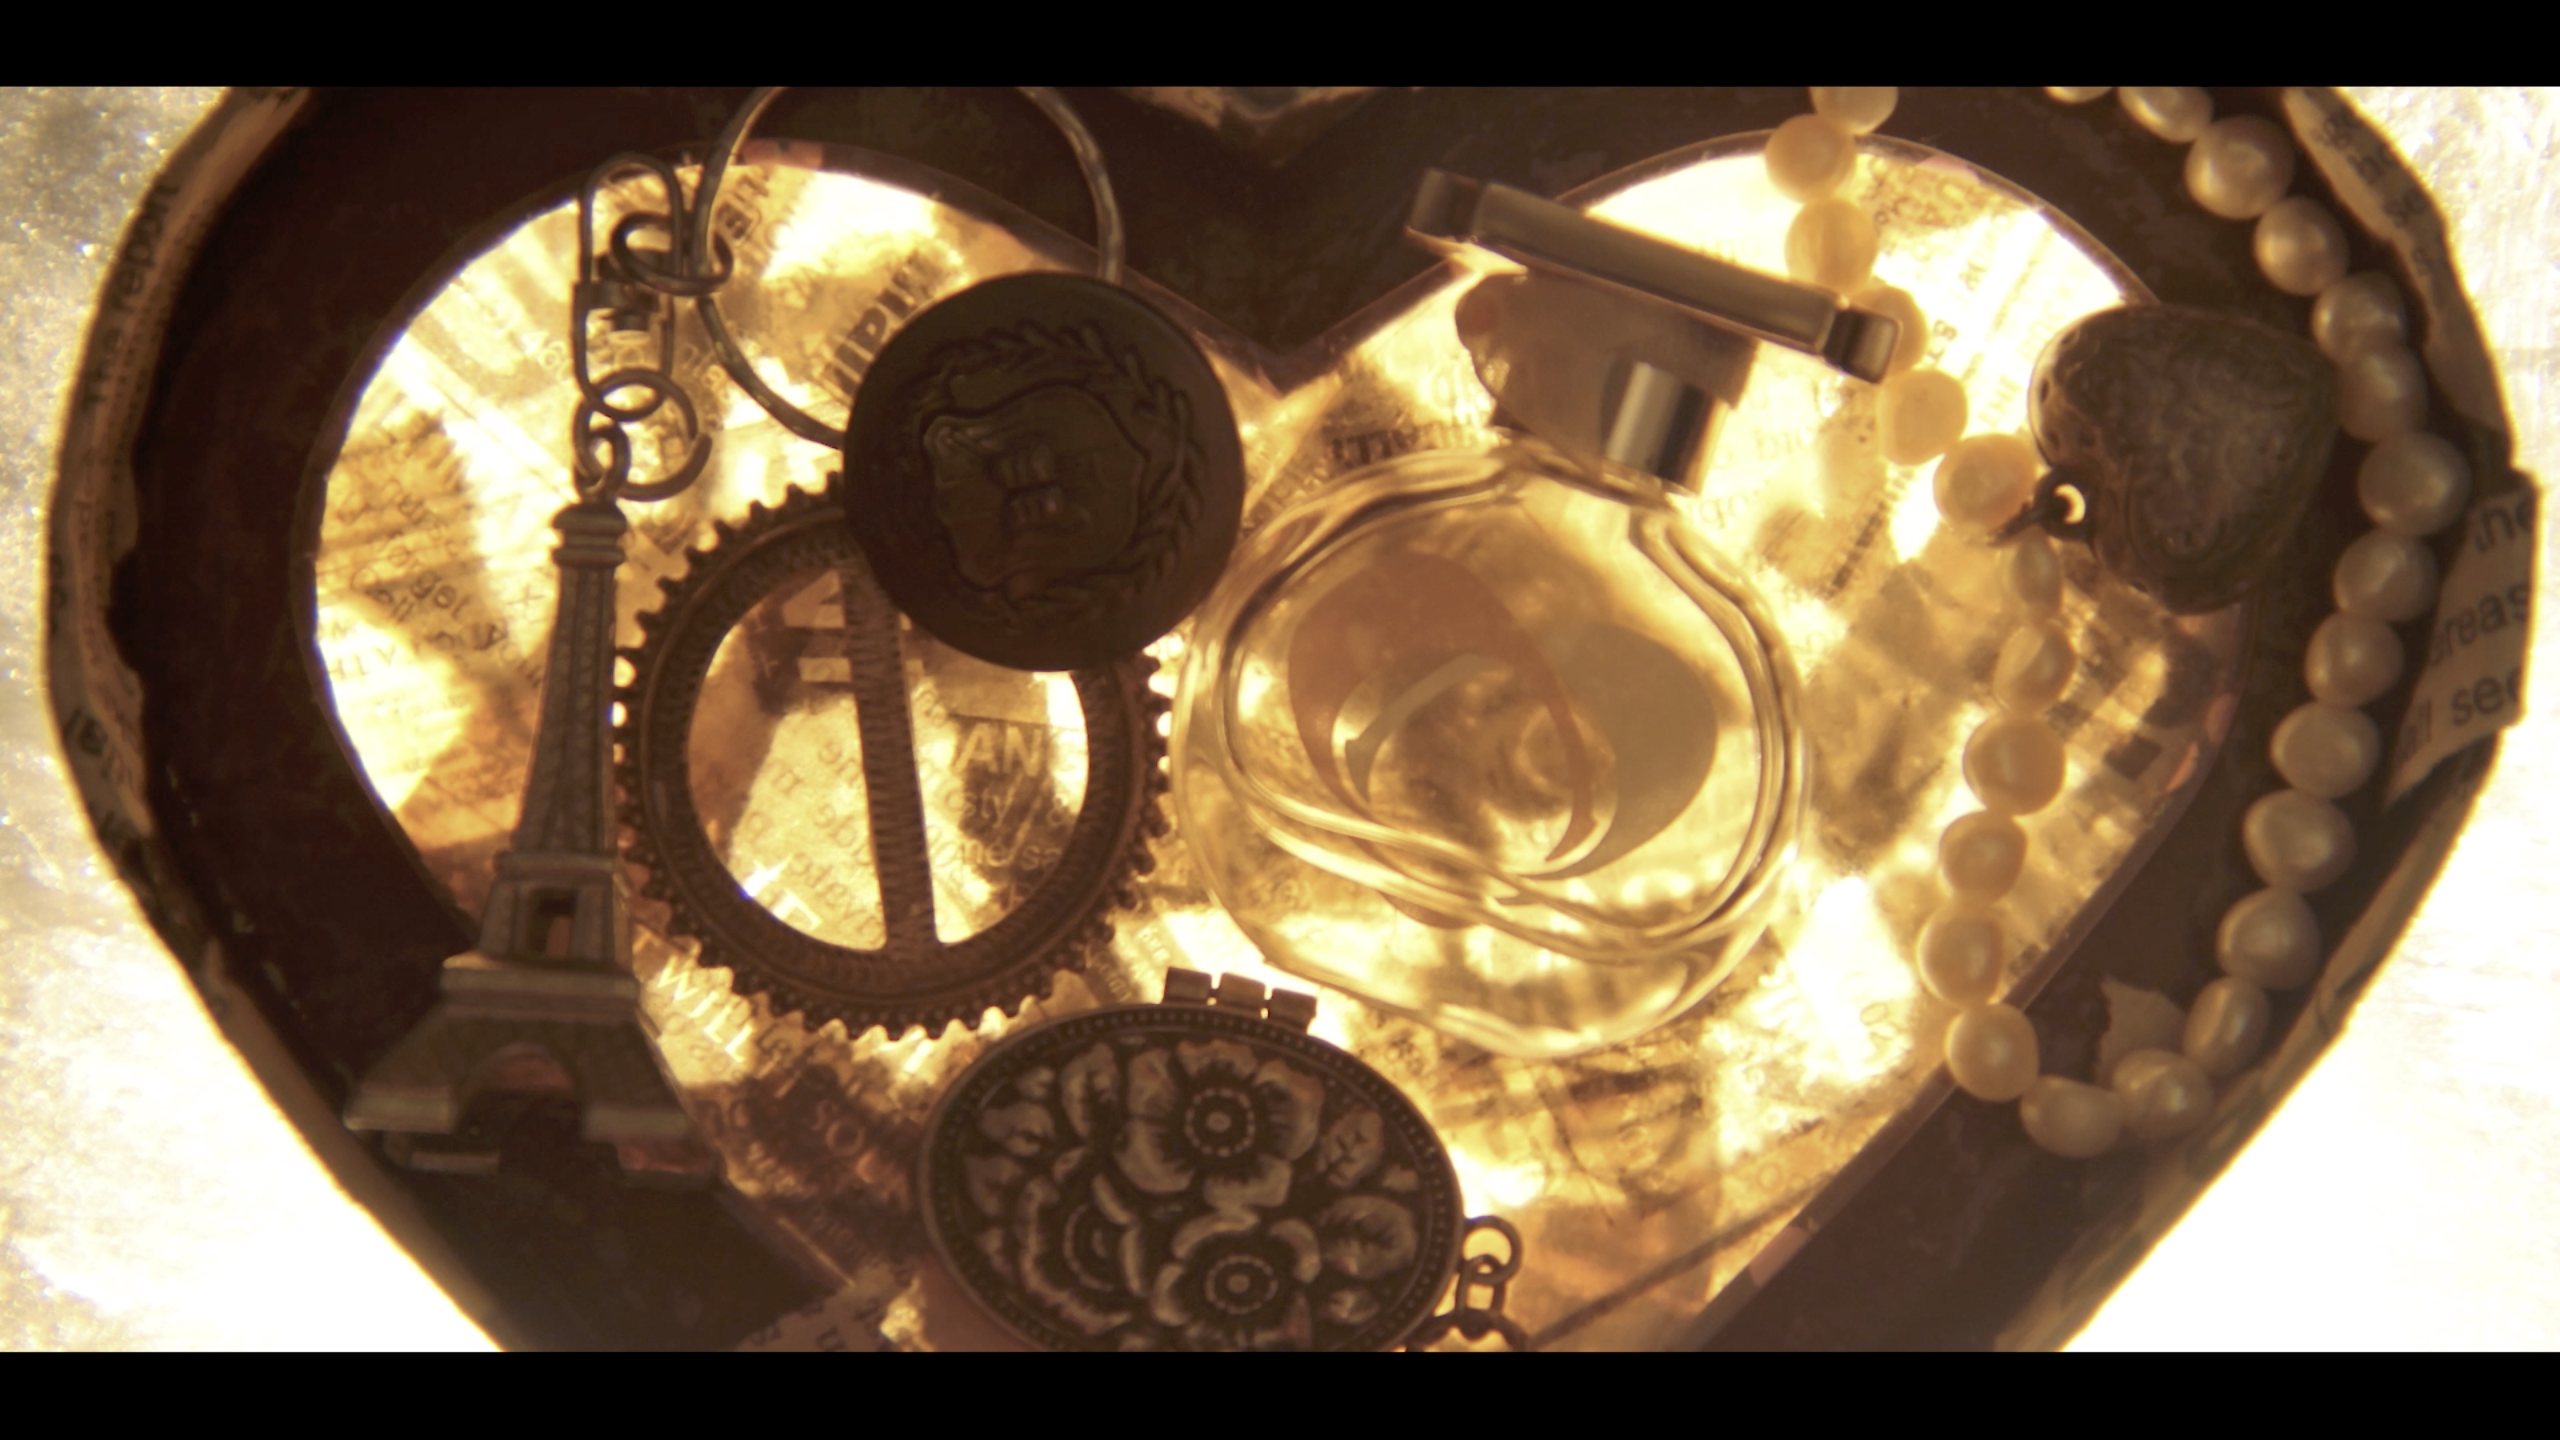 The Heart Clock from Eulogies